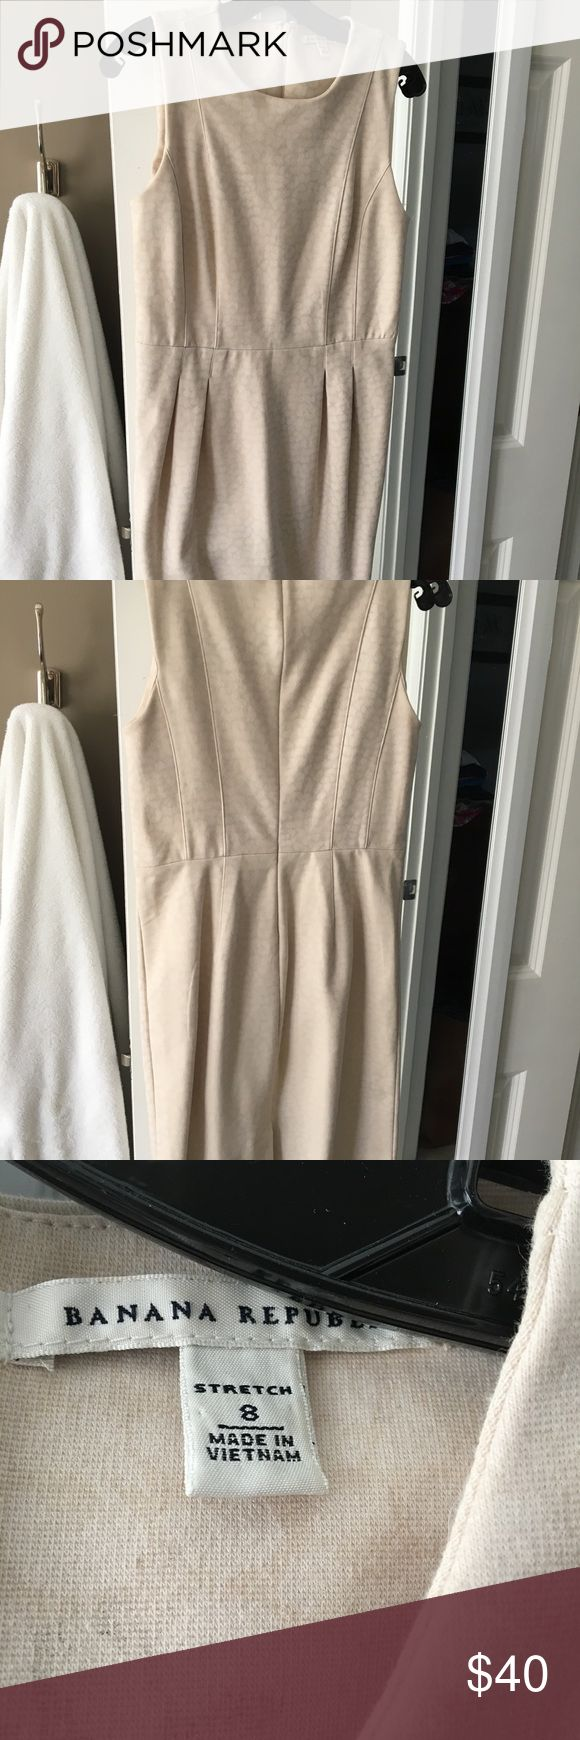 Banana Republic Neutral Animal Print Sheath Dress Take a look at this!!  Beautiful, professional, pre-loved cotton blend dress.  Perfect for work or any special occasion.  It features a zip back and darting on the skirt- very flattering! Banana Republic Dresses Midi